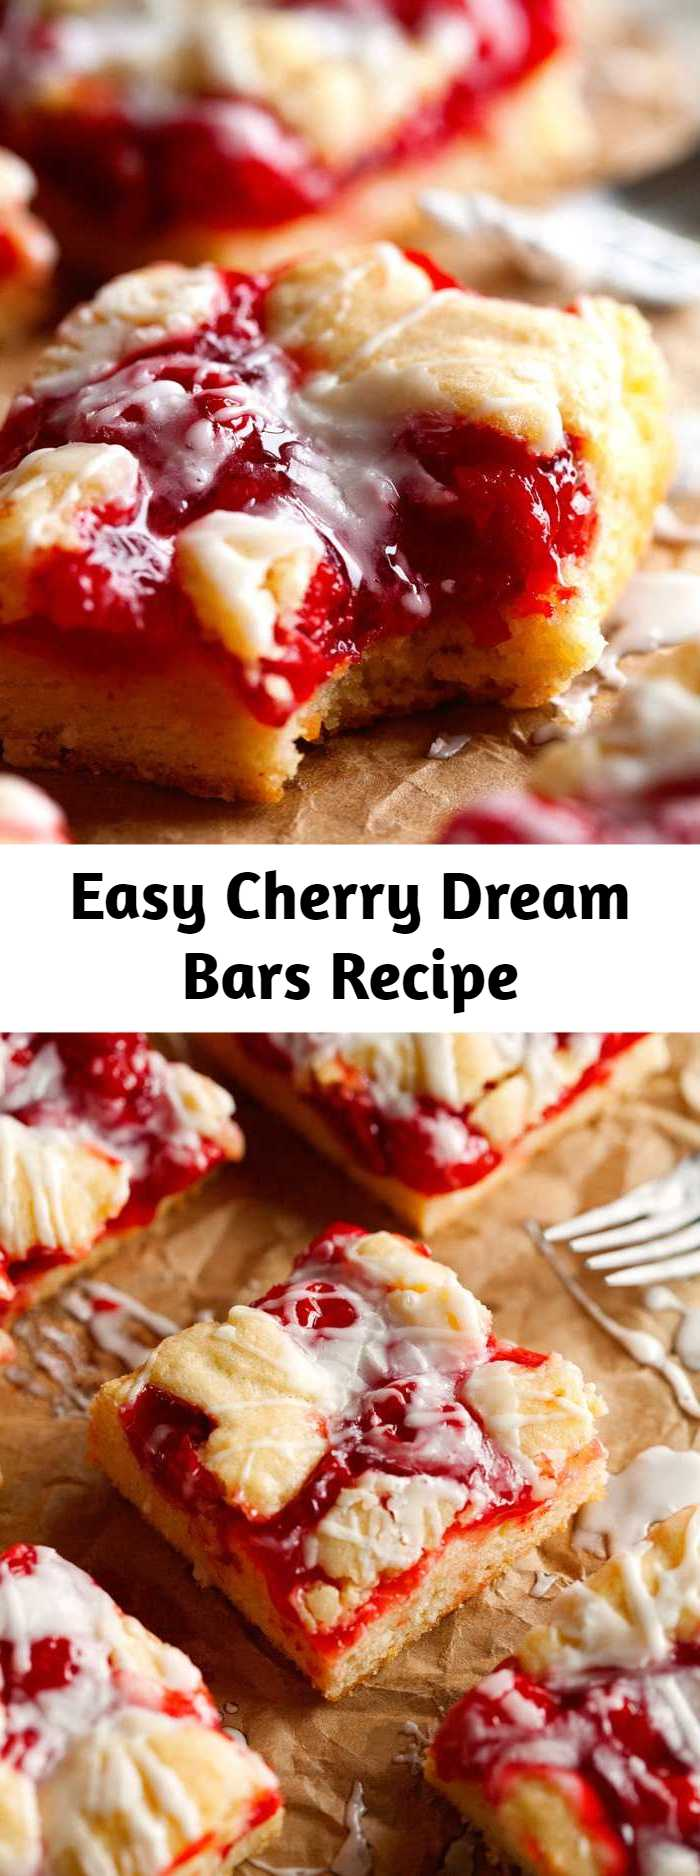 Easy Cherry Dream Bars Recipe - Not only does it require less than 10 minutes of active time to make these, but you'll likely have everything you need already in your pantry. I like to work with simple ingredients to make some scrumptious recipes that are filled with flavor. Perfectly suitable to feed a crowd or just a couple of people – these bars are definitely no exception!